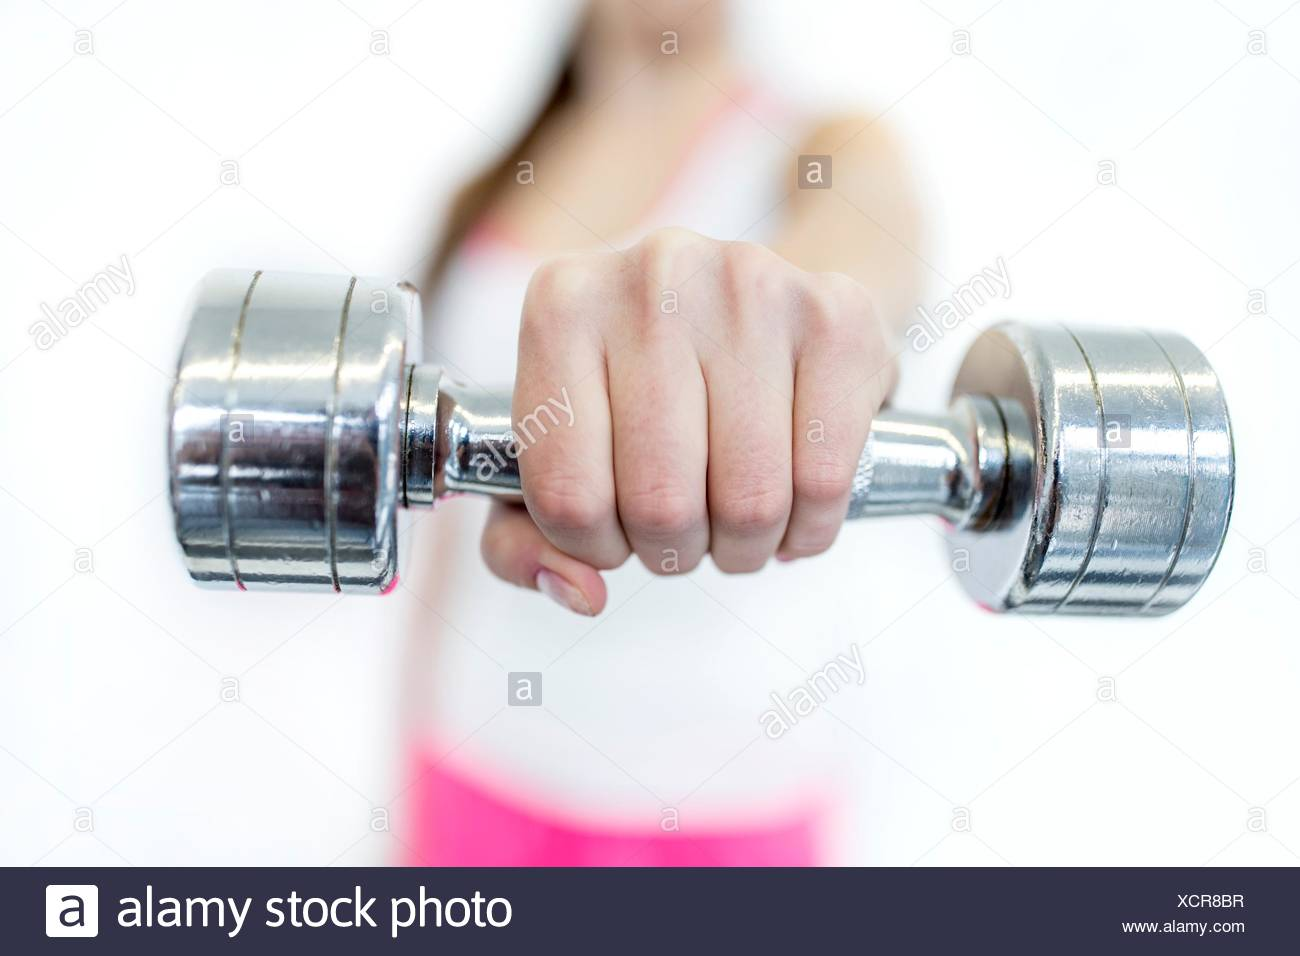 PROPERTY RELEASED. MODEL RELEASED. Young woman working out with dumbbell, close-up. - Stock Image